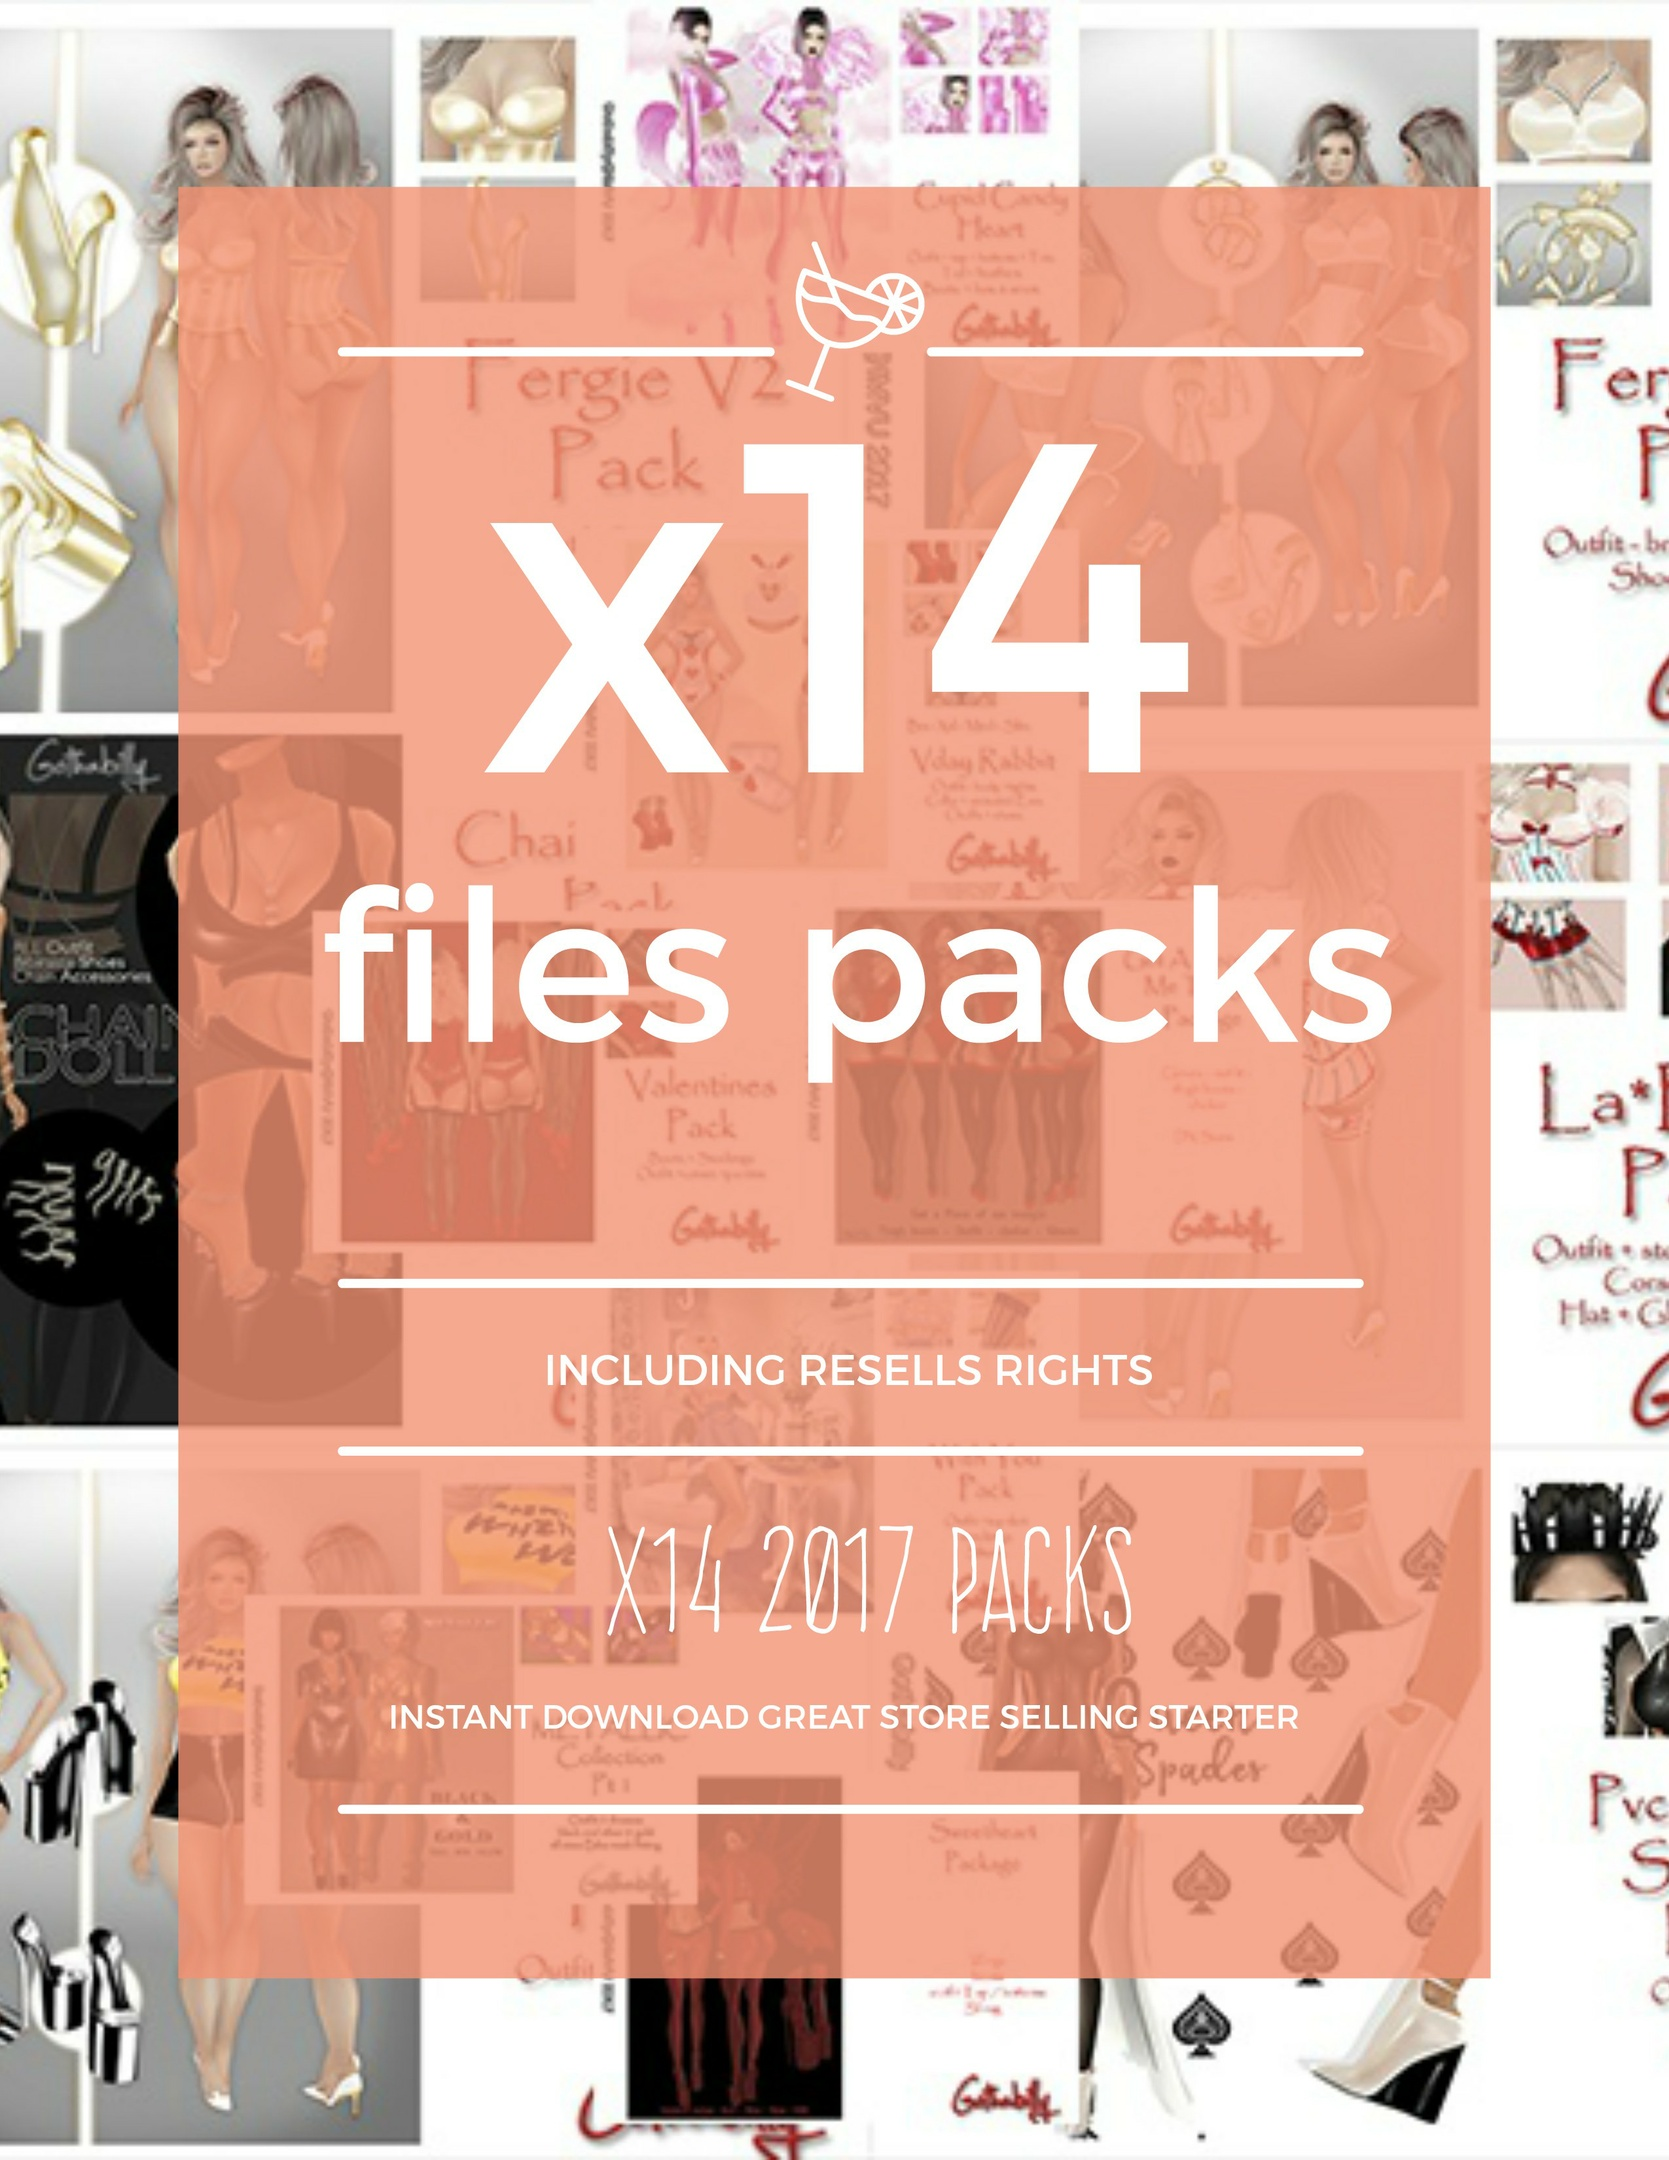 cHEAP starter package offer INCLUDING RESELLS RIGHTS X14 PACKAGES